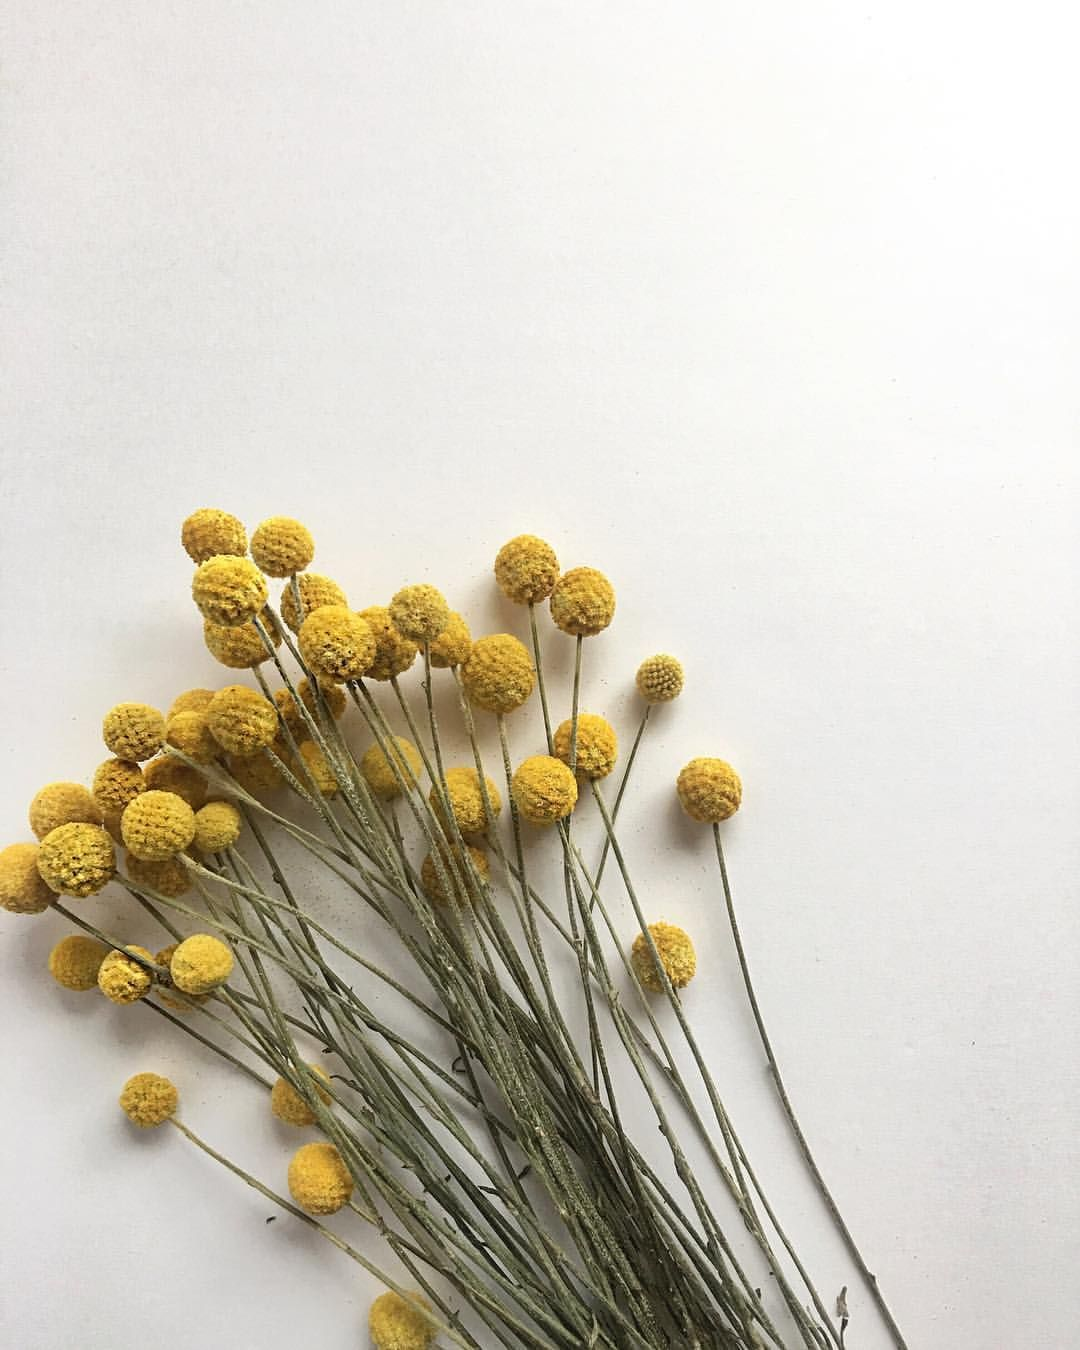 Blooms Craspedia Bouquet Dried Craspedia Bouquet Flatlay Mustard Yellow Craspedia Bouquet Mustard Yellow Flowers Dri Dried Flowers Mustard Flowers Flowers